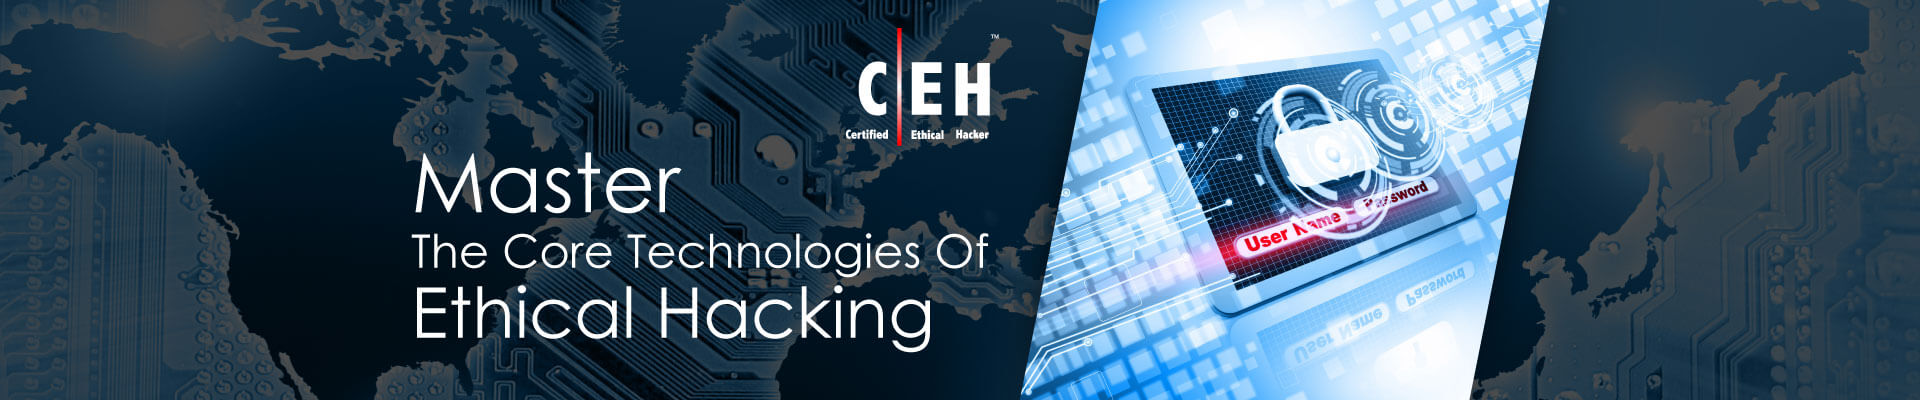 CEH training Certification